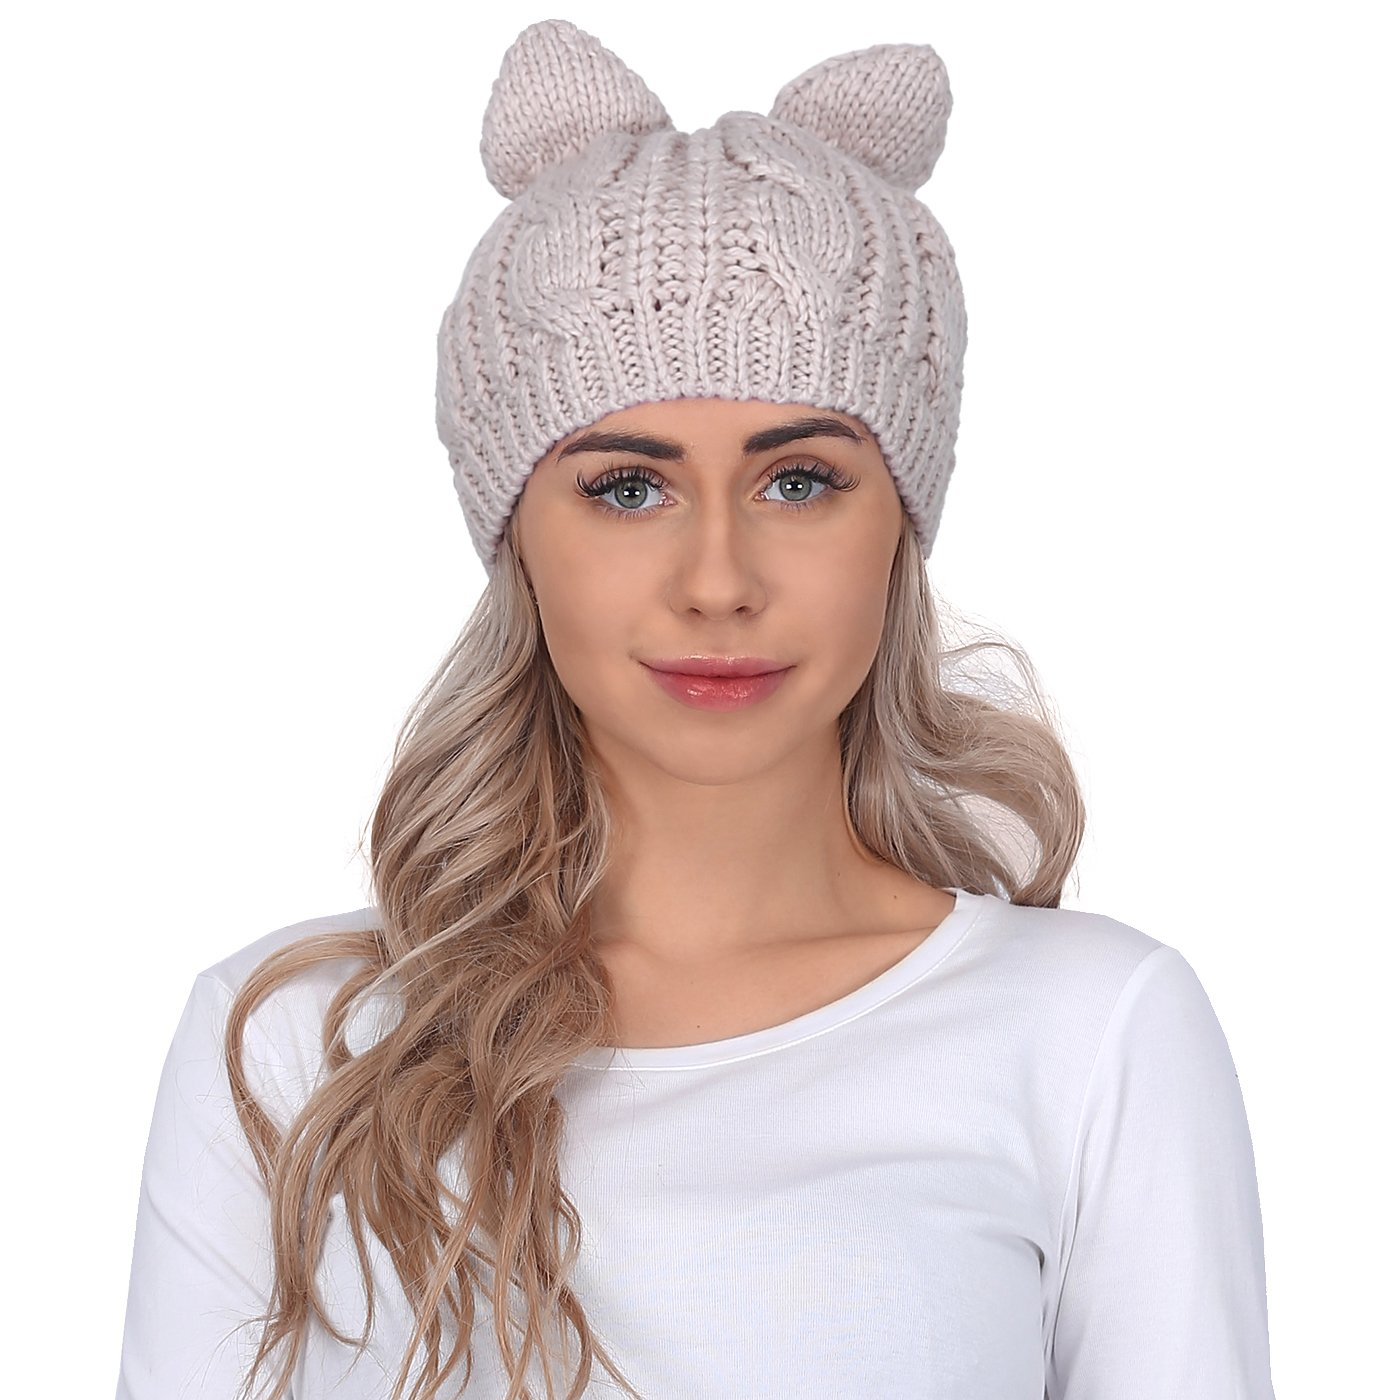 25b520fddcf HDE Women s Knit Beanie Cat Ear Crochet Braided Winter Ski Hat Knitted Cap  at Amazon Women s Clothing store